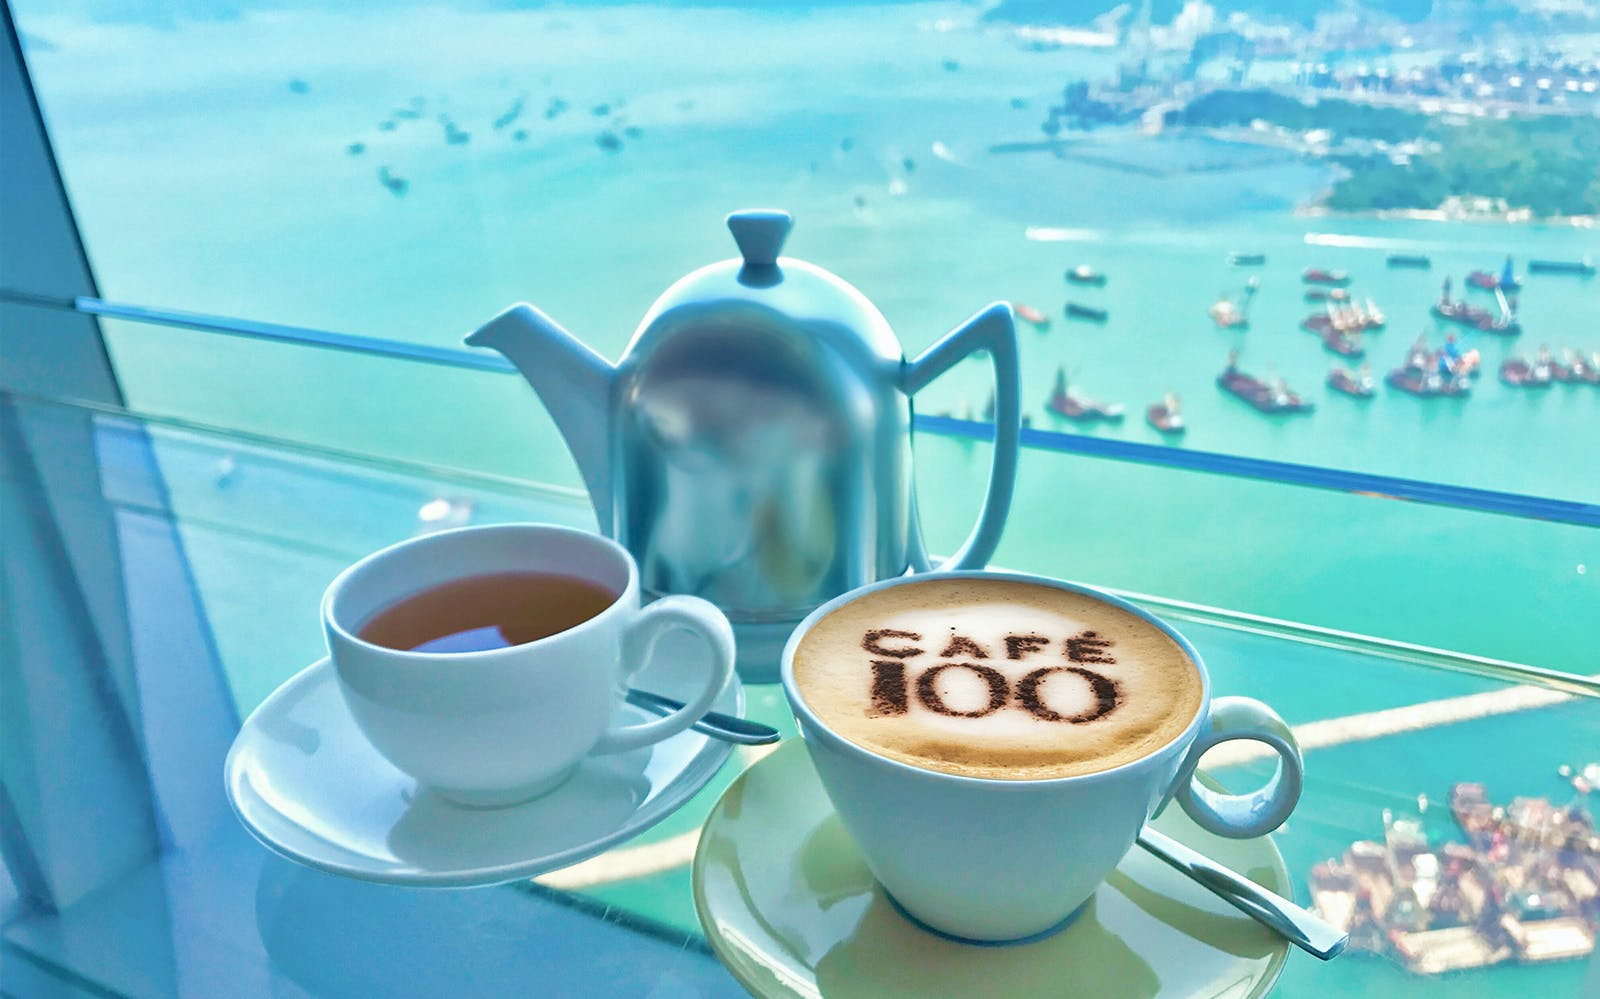 sky100 ticket in hong kong with cafe packages-2